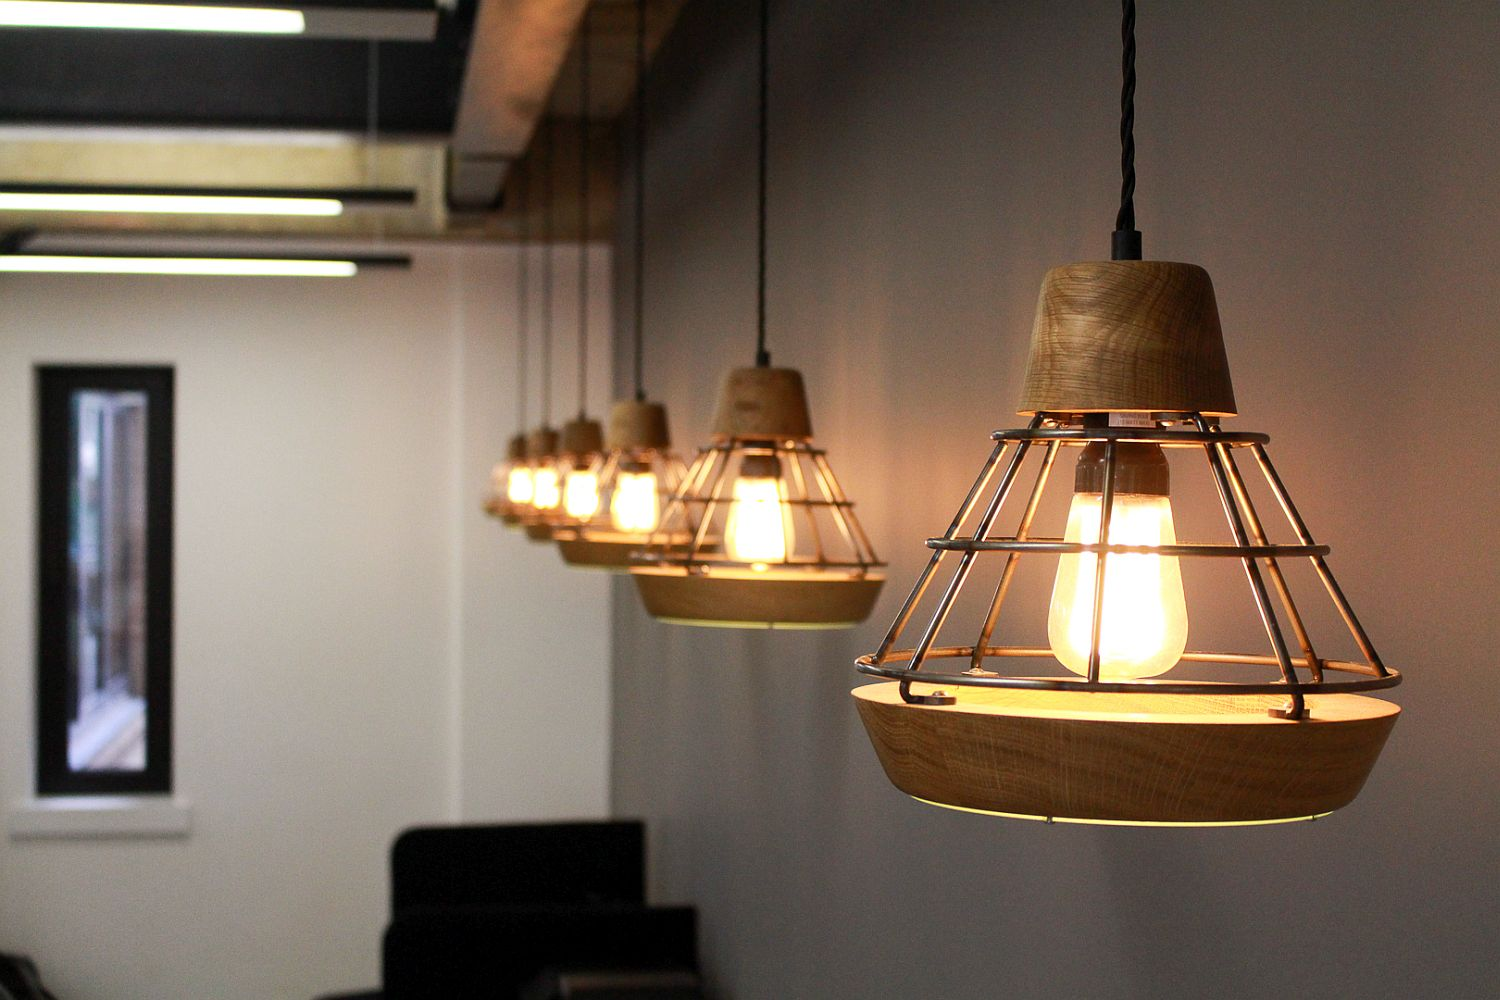 Innovative pendant lighting designed by Liqui Designs gives the office old world charm